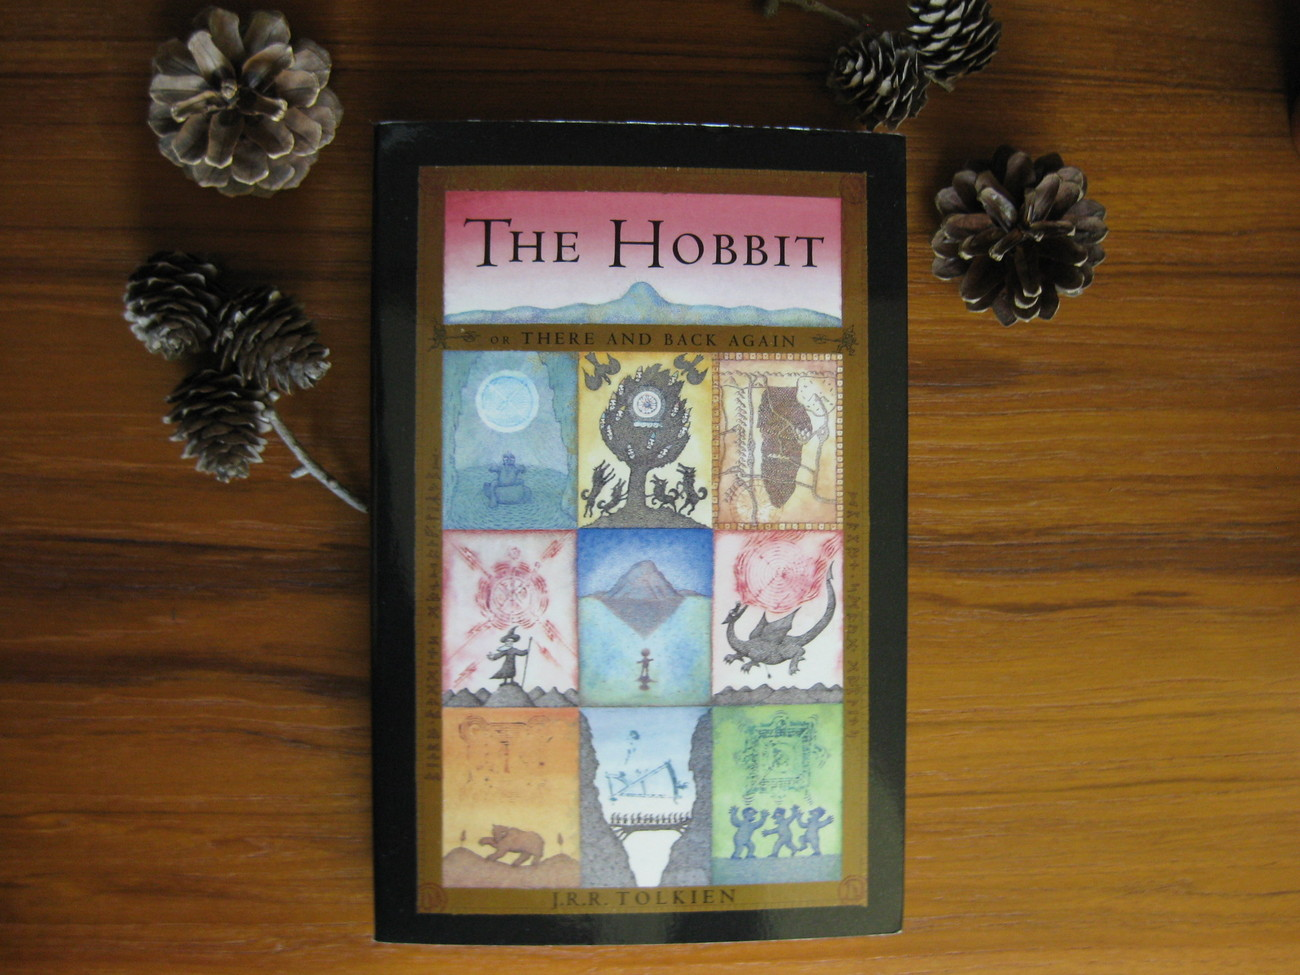 J. R. R. TOLKIEN  THE HOBBIT  BOOK #1 IN THE GREAT FANTASY ADVENTURE CLASSIC!